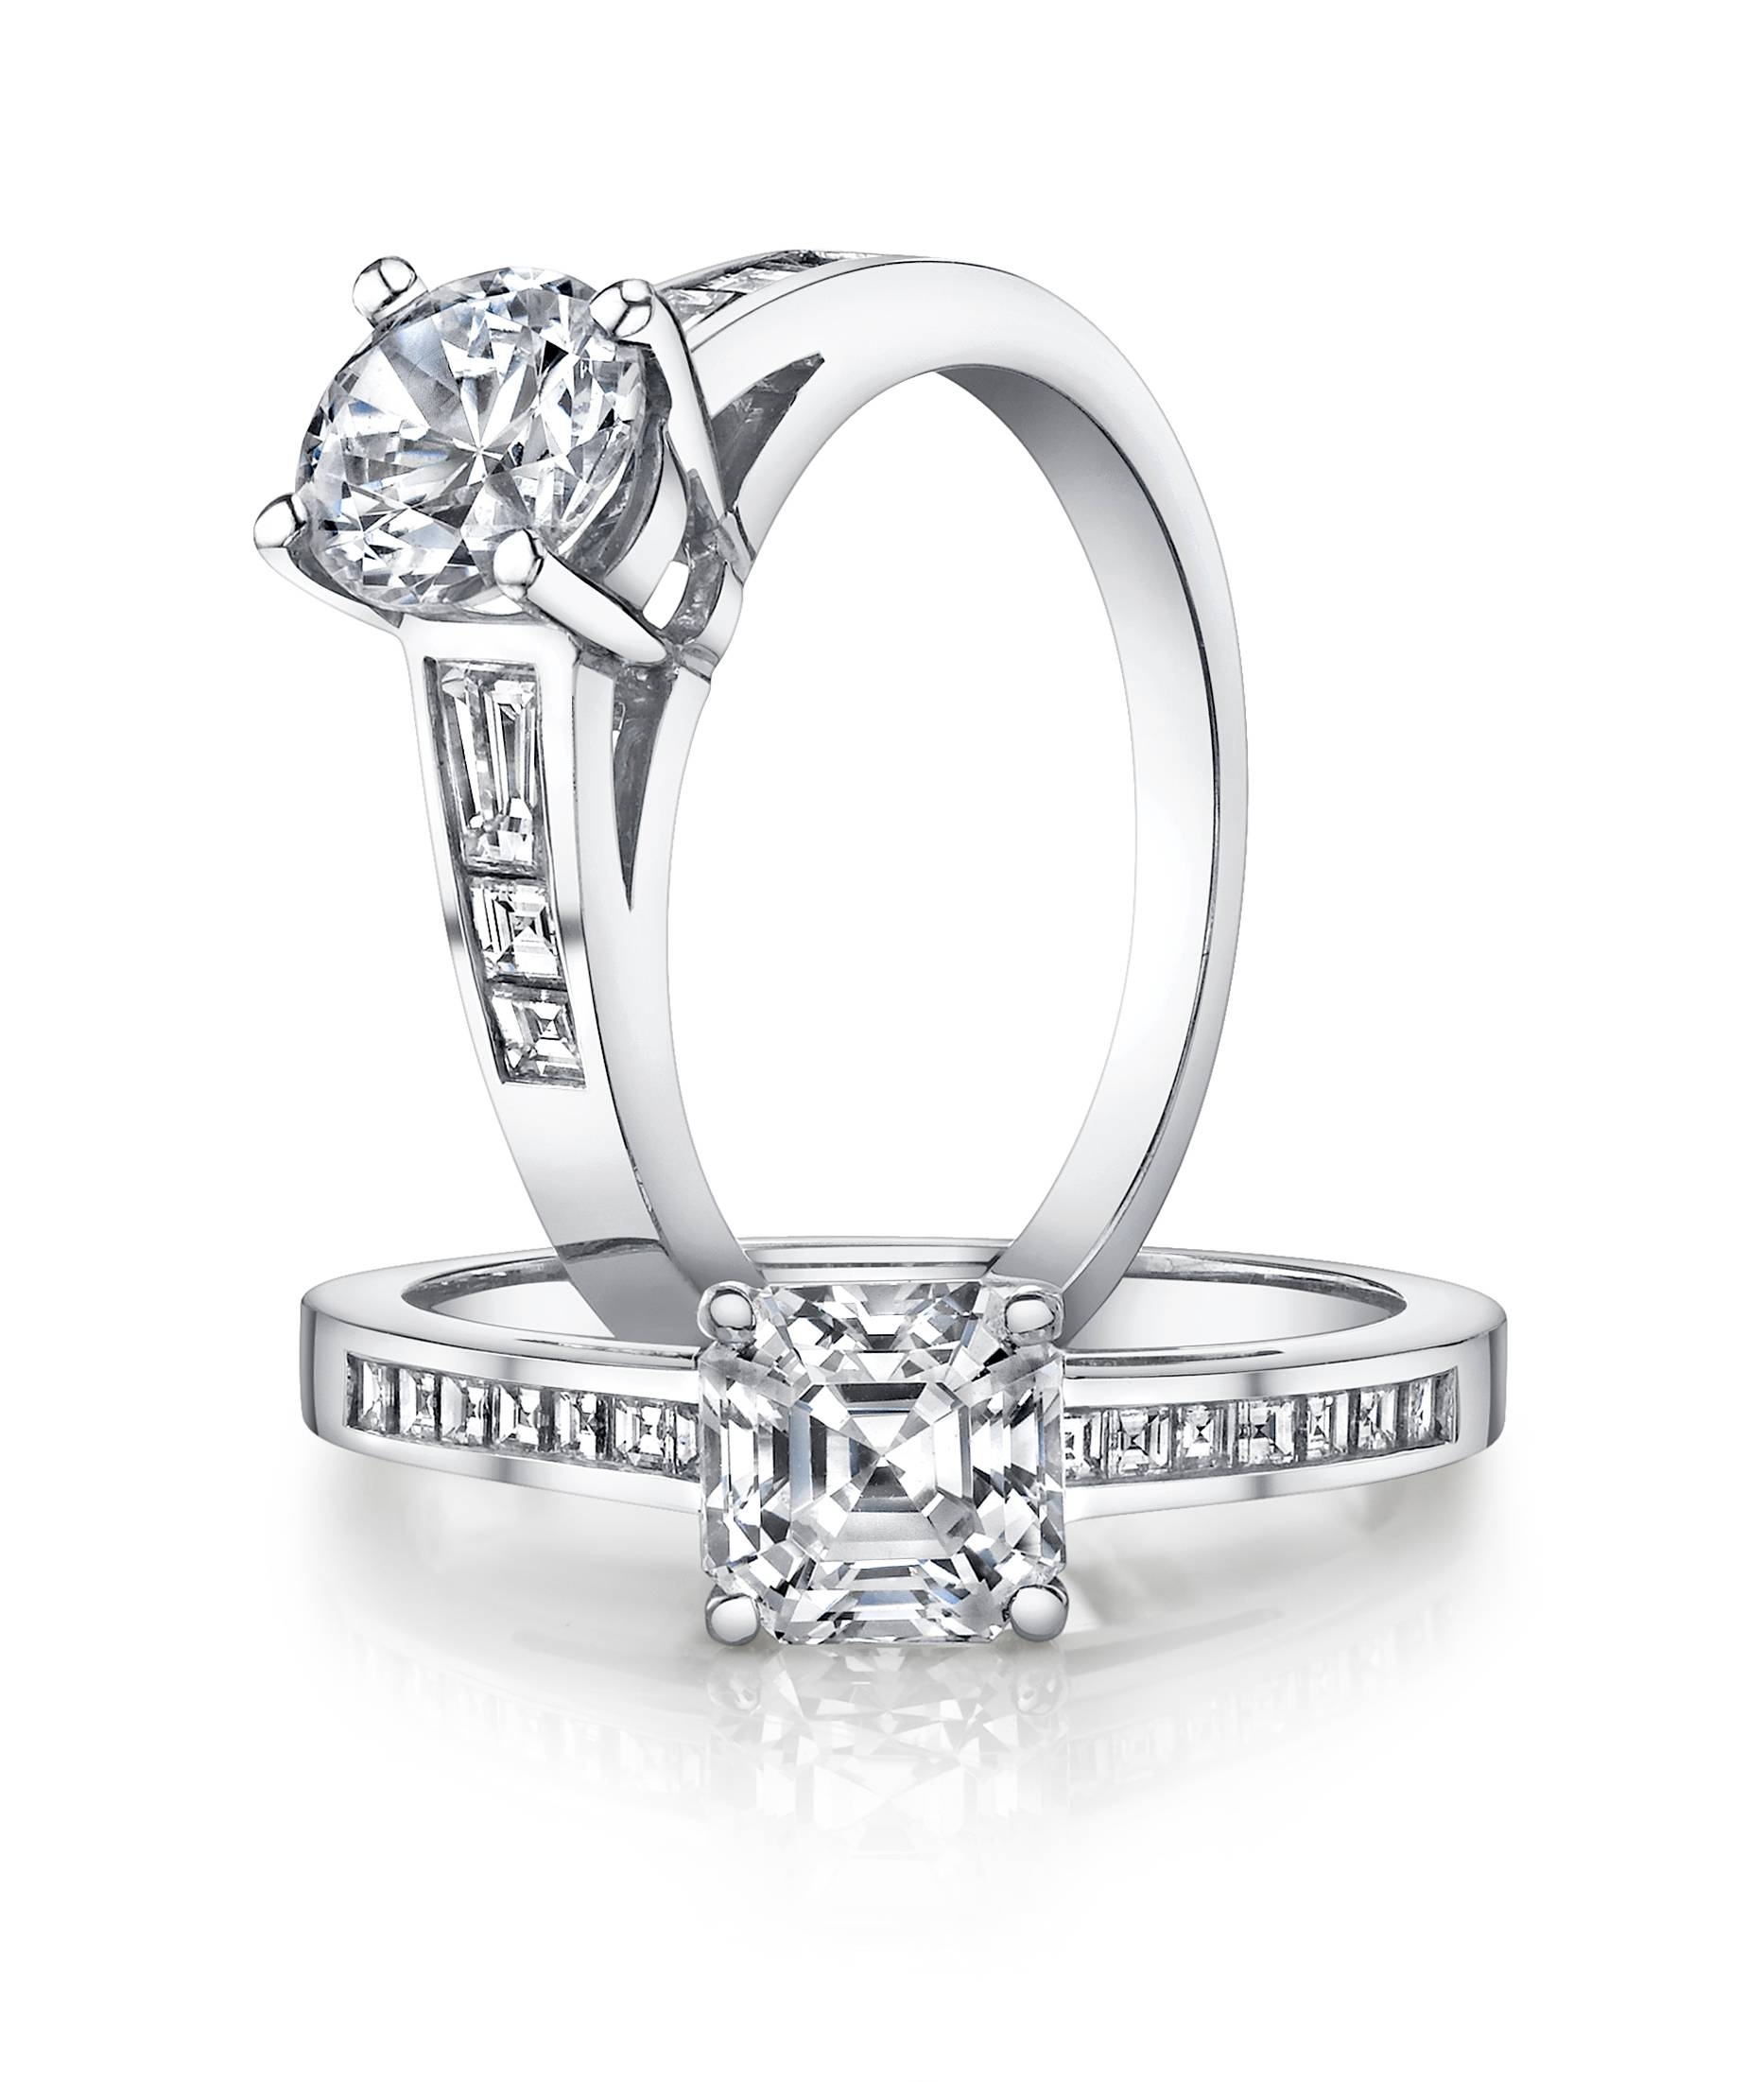 Platinum Wedding Rings For Womenwedwebtalks | Wedwebtalks Inside Platinum Wedding Rings For Women (View 13 of 15)